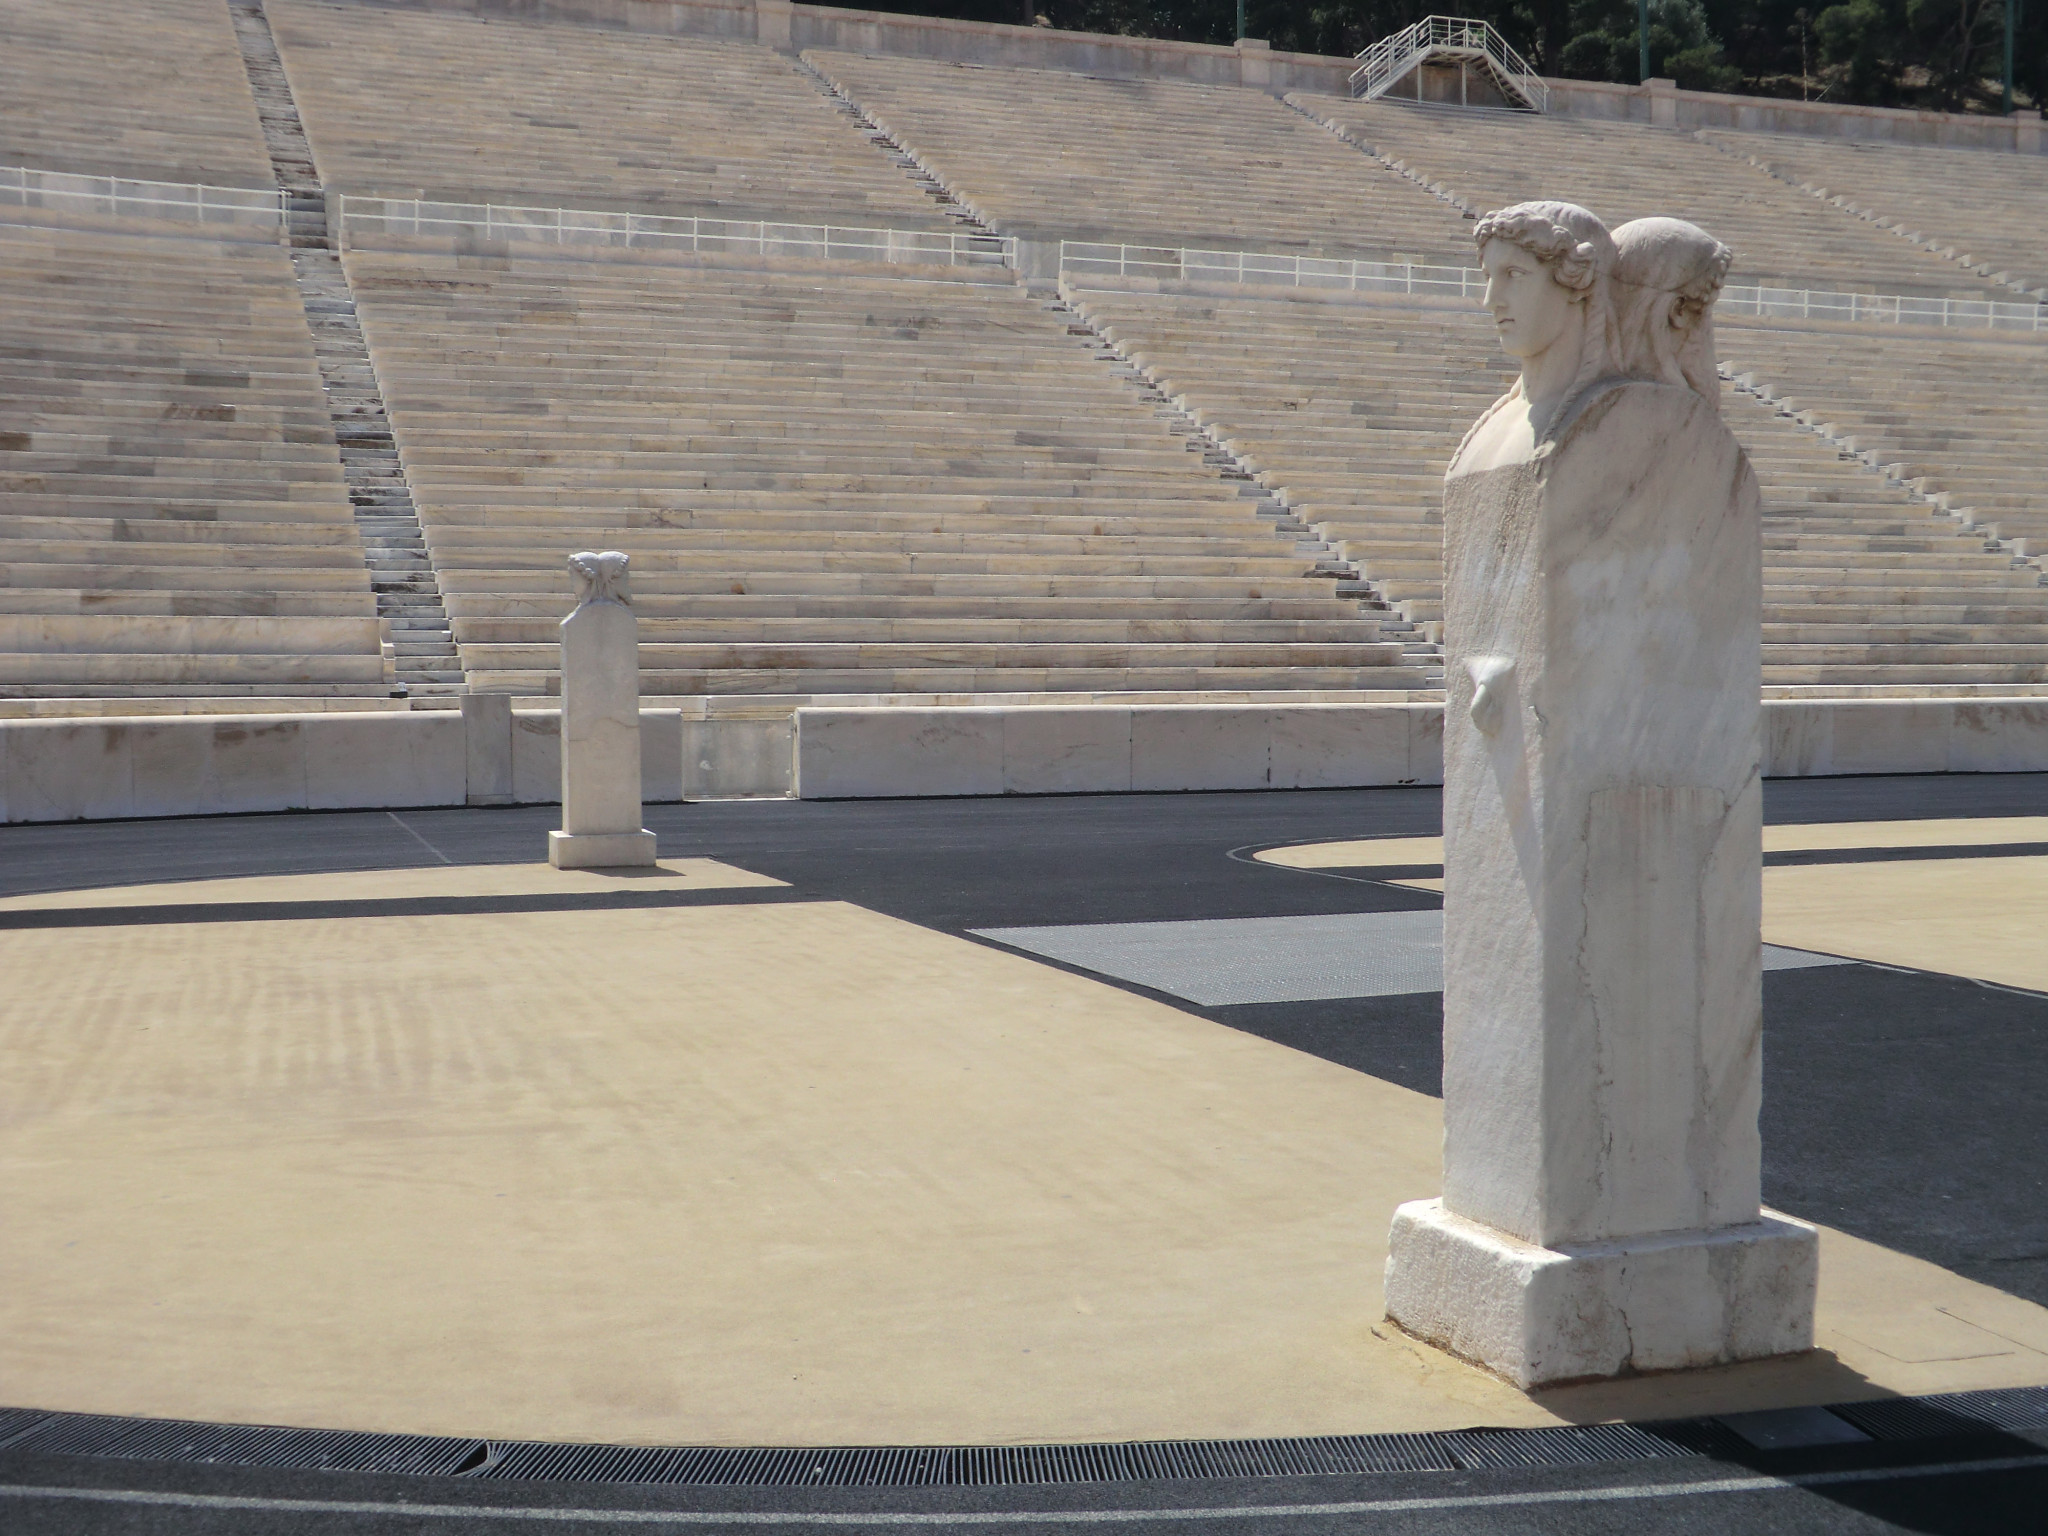 The restoration of the Panathinaiko Stadium for the first modern Olympic Games in 1896 helped gain support for the event in Greece after many had been opposed to the plan ©ITG